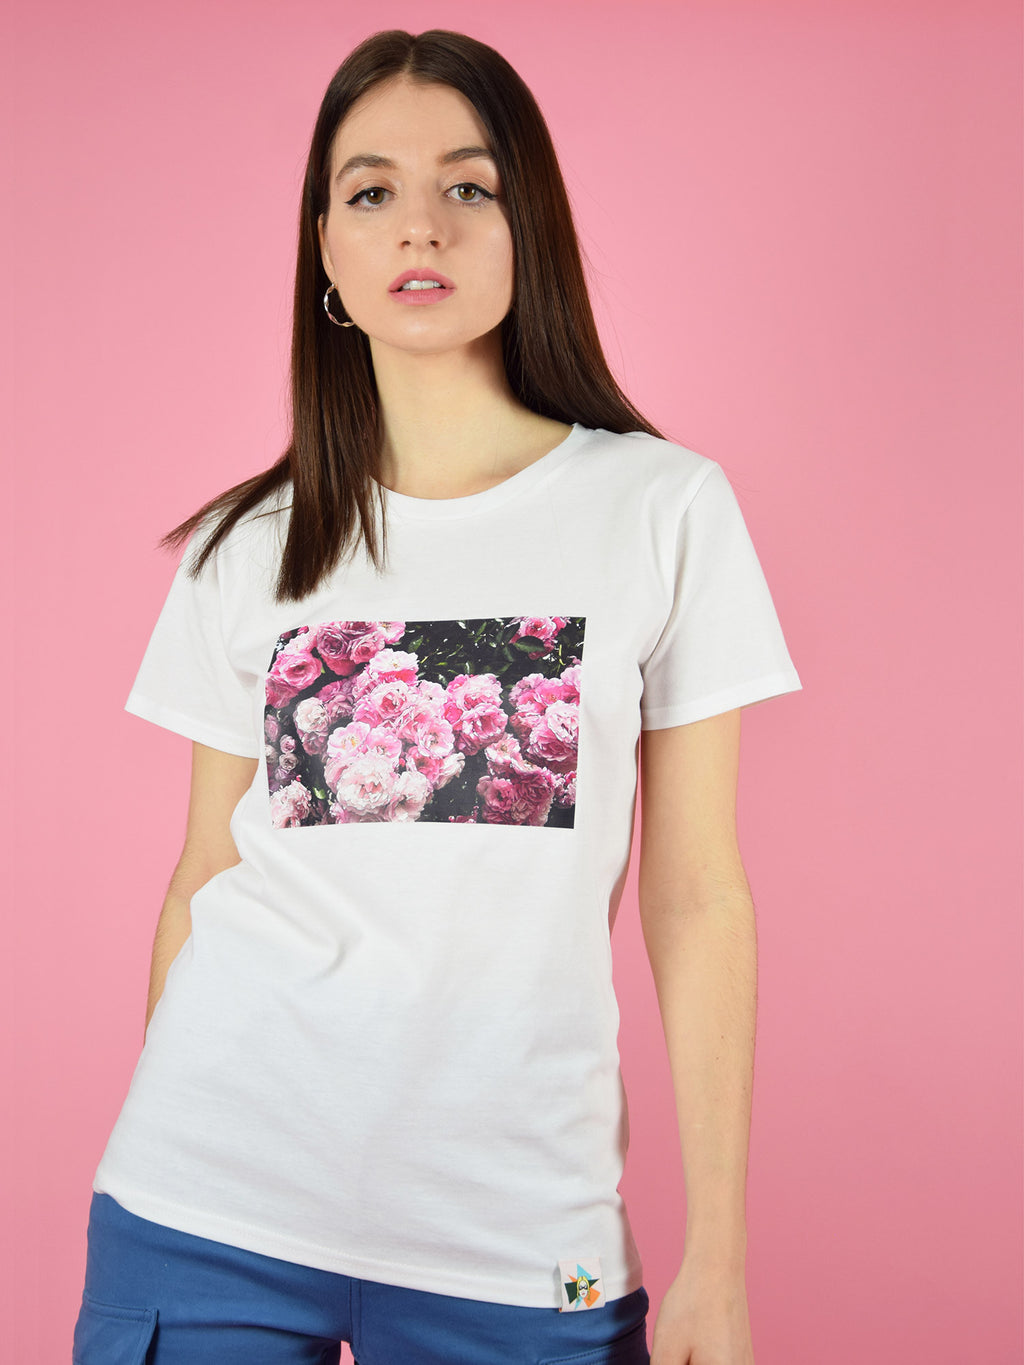 The Rose Garden Organic Cotton Tee in white is a 100% GOTS certified organic cotton t-shirt with a cool, colourful print of roses in a garden.